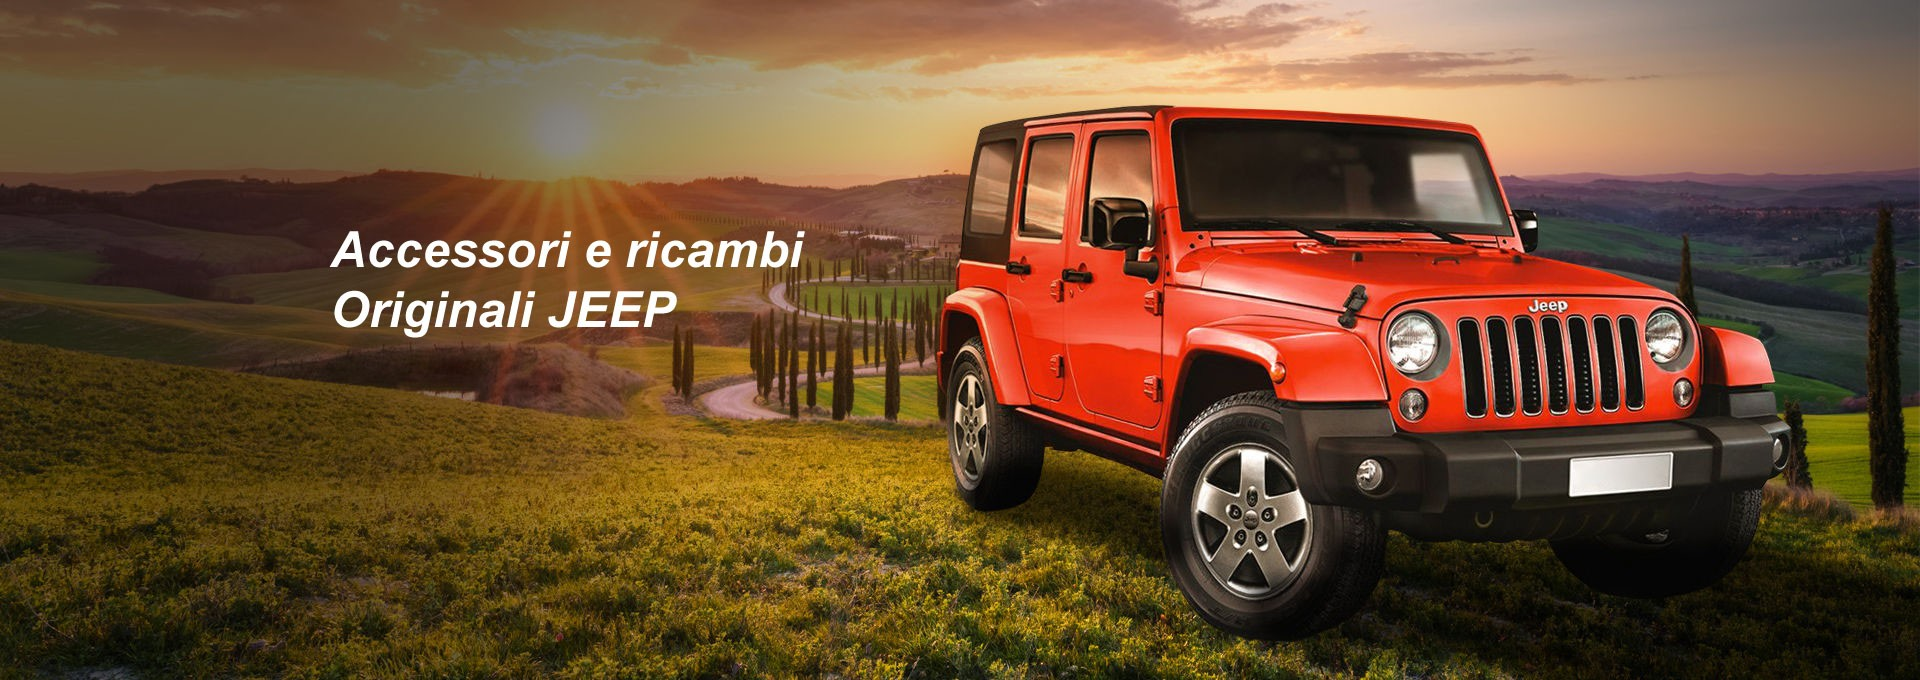 ACCESSORI E RICAMBI ORIGINALI JEEP